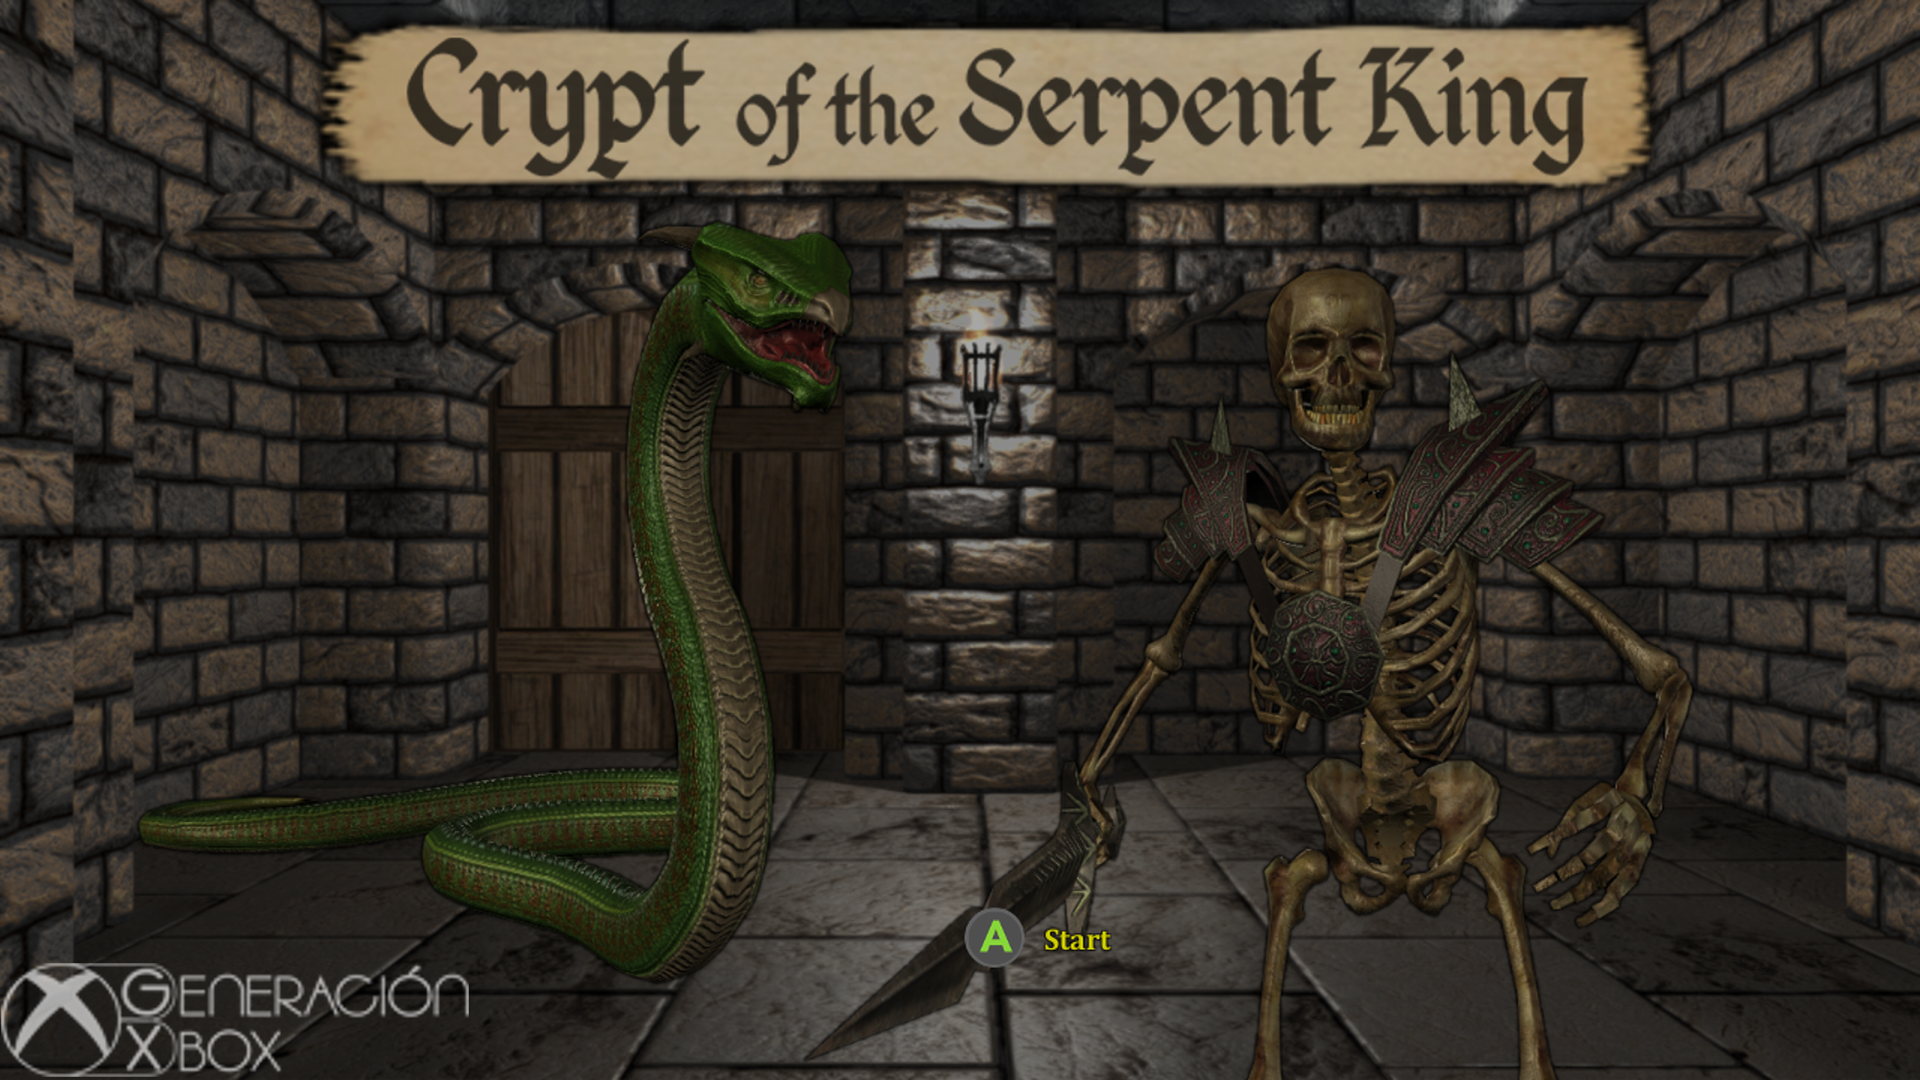 Análisis de Crypt of the Serpent King